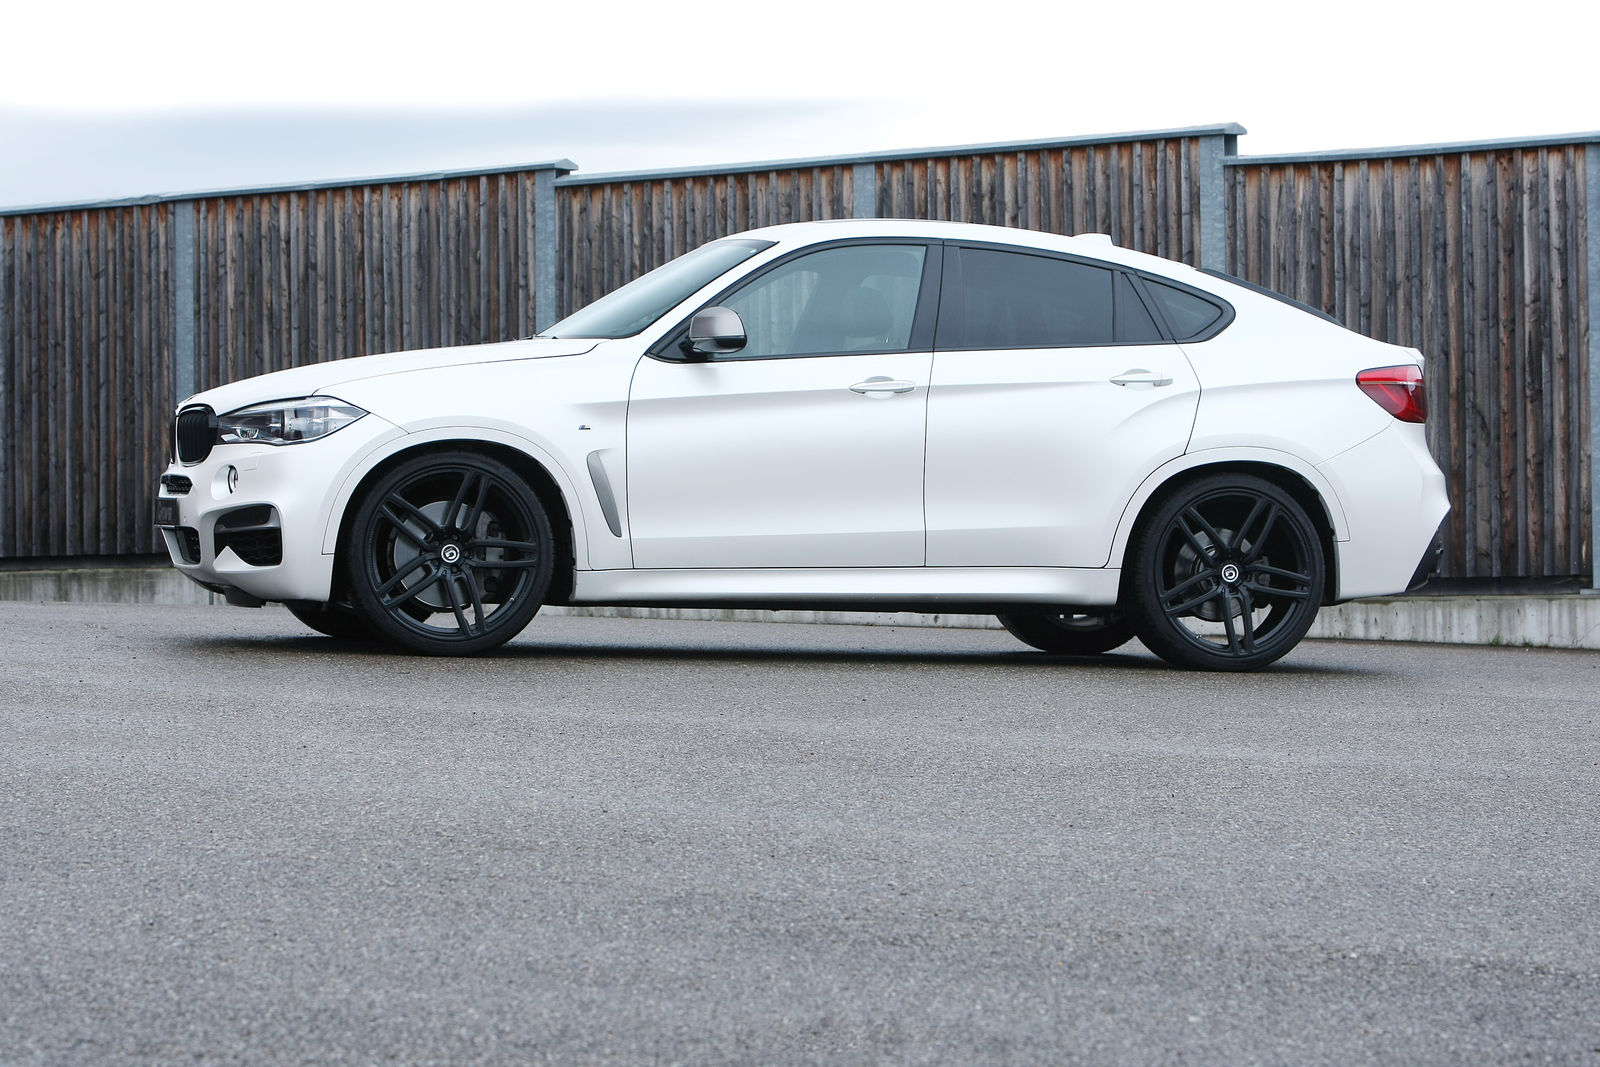 G Power Tunes Bmw X6 M50d To 455 Hp Autoevolution